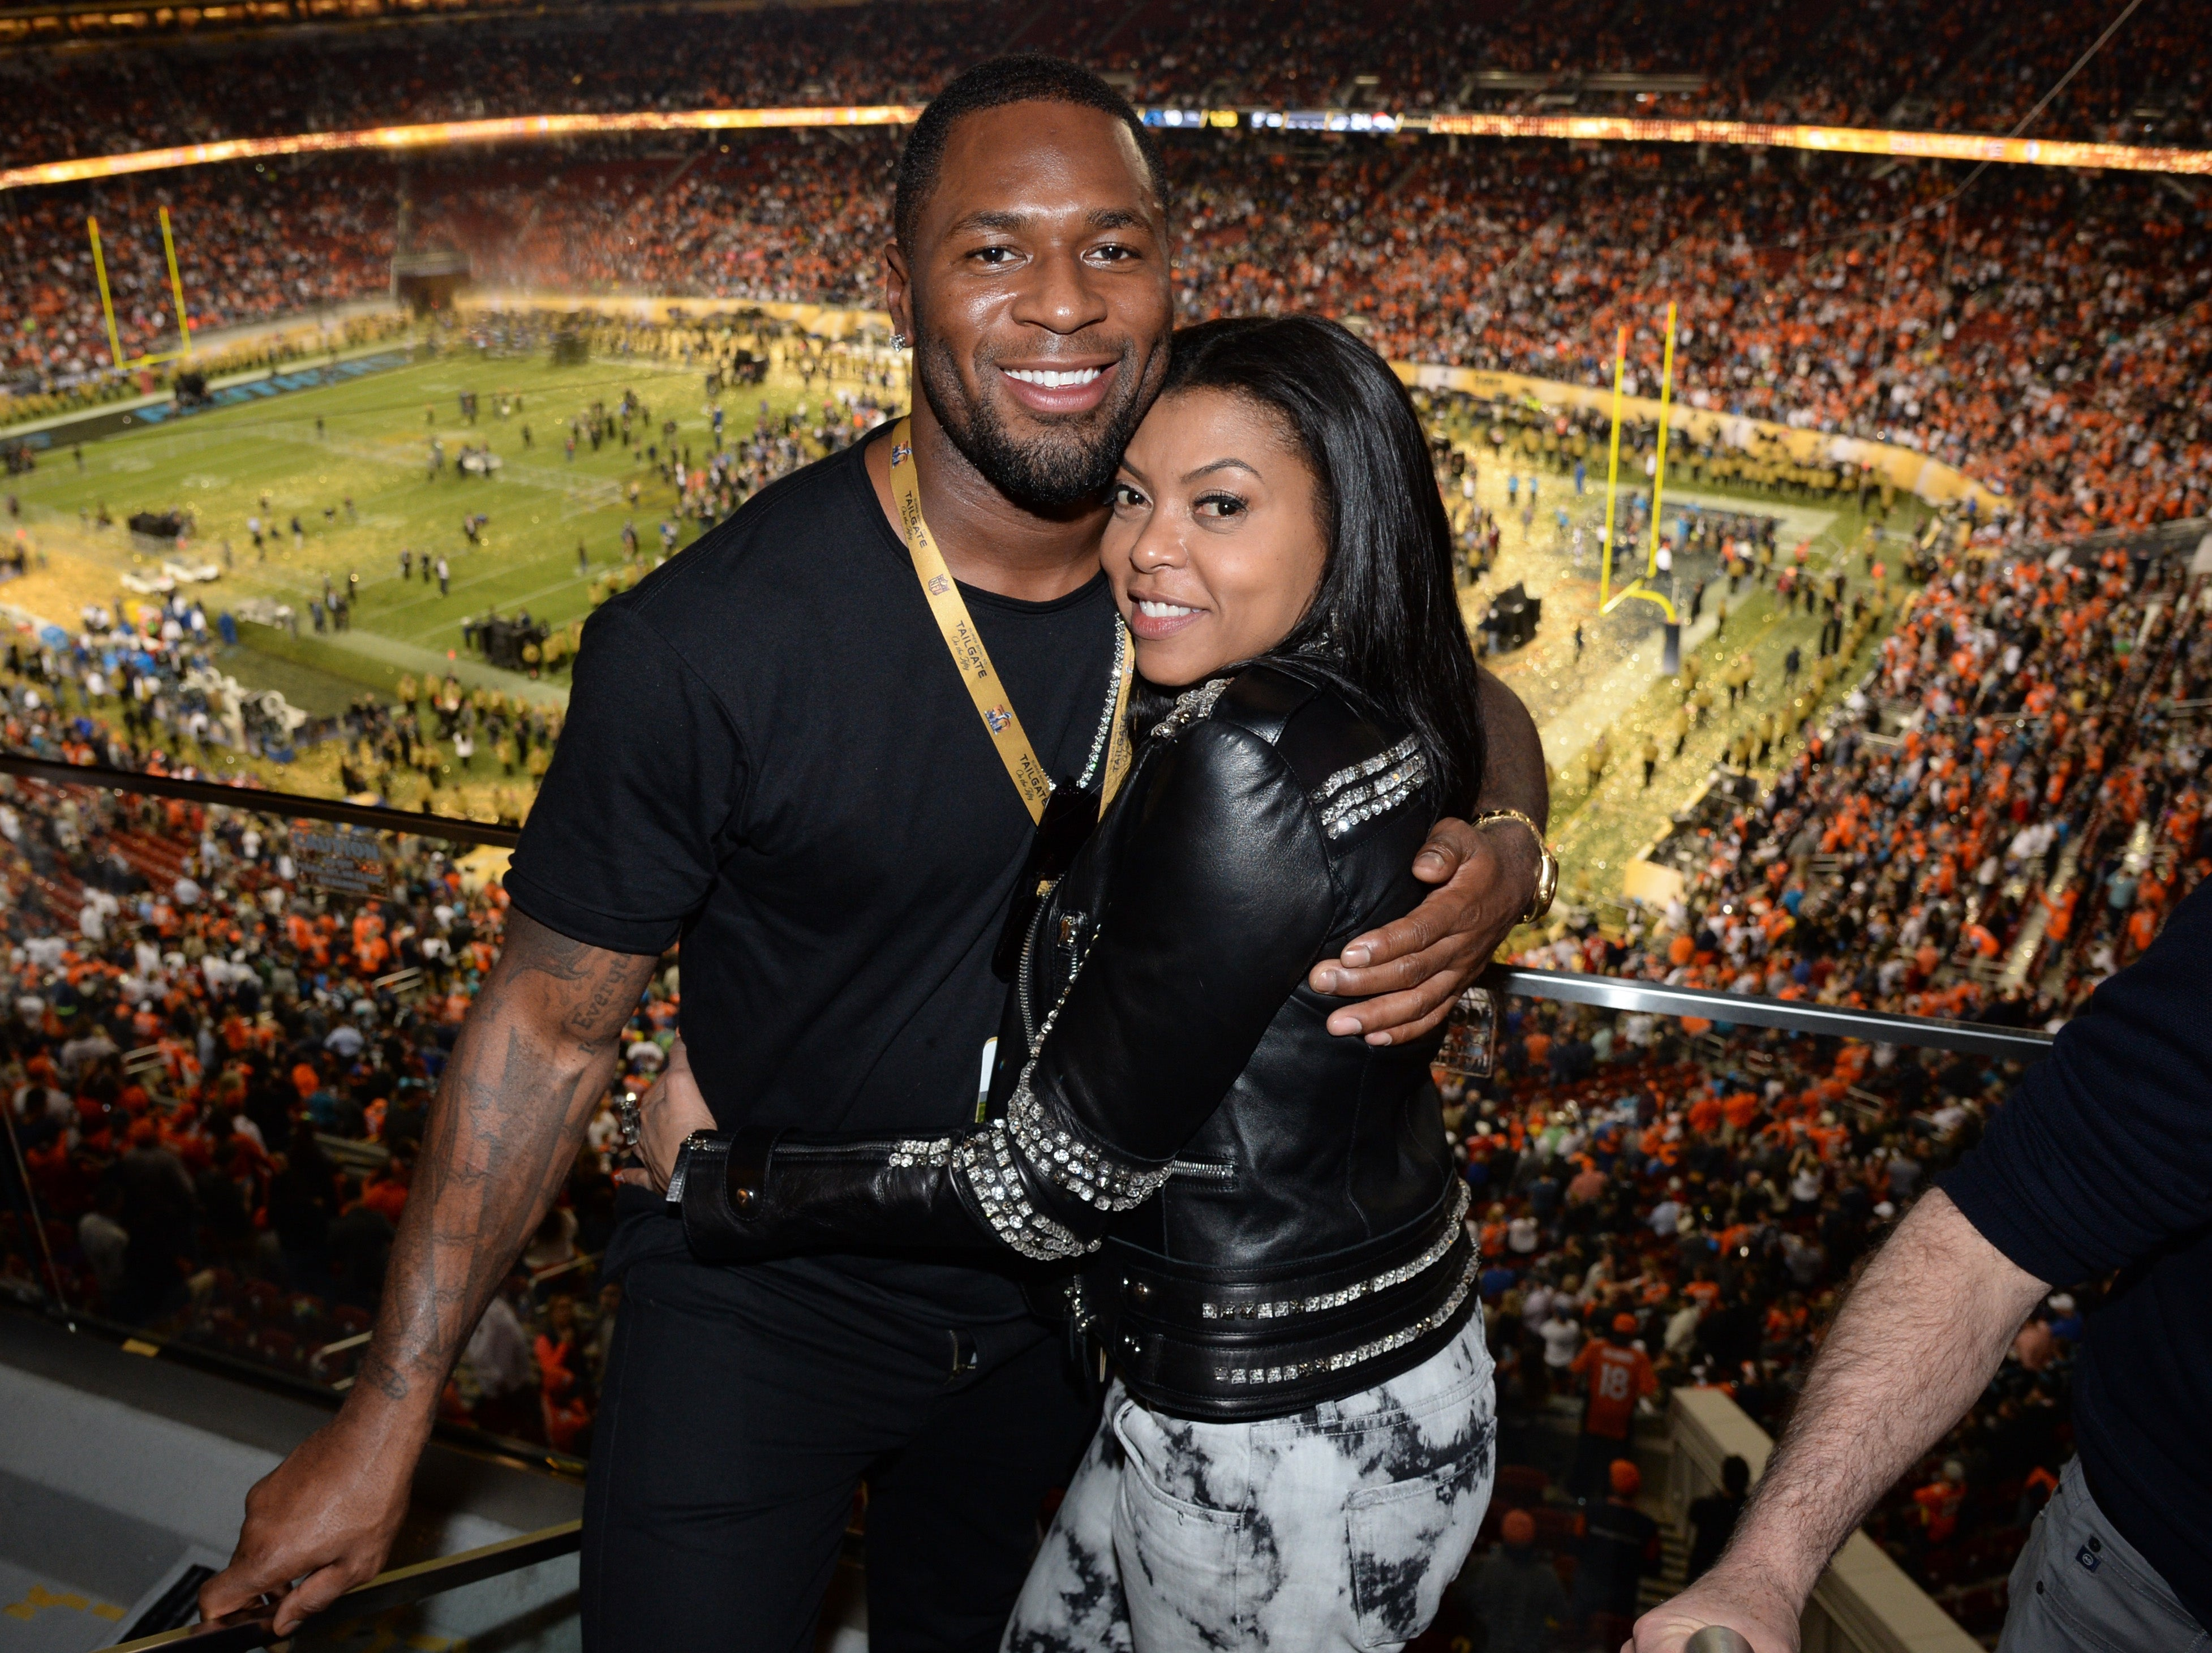 Every Time We Think Taraji P. Henson And Her Gorgeous Fiancé Couldn't Be Any Cuter, This Happens